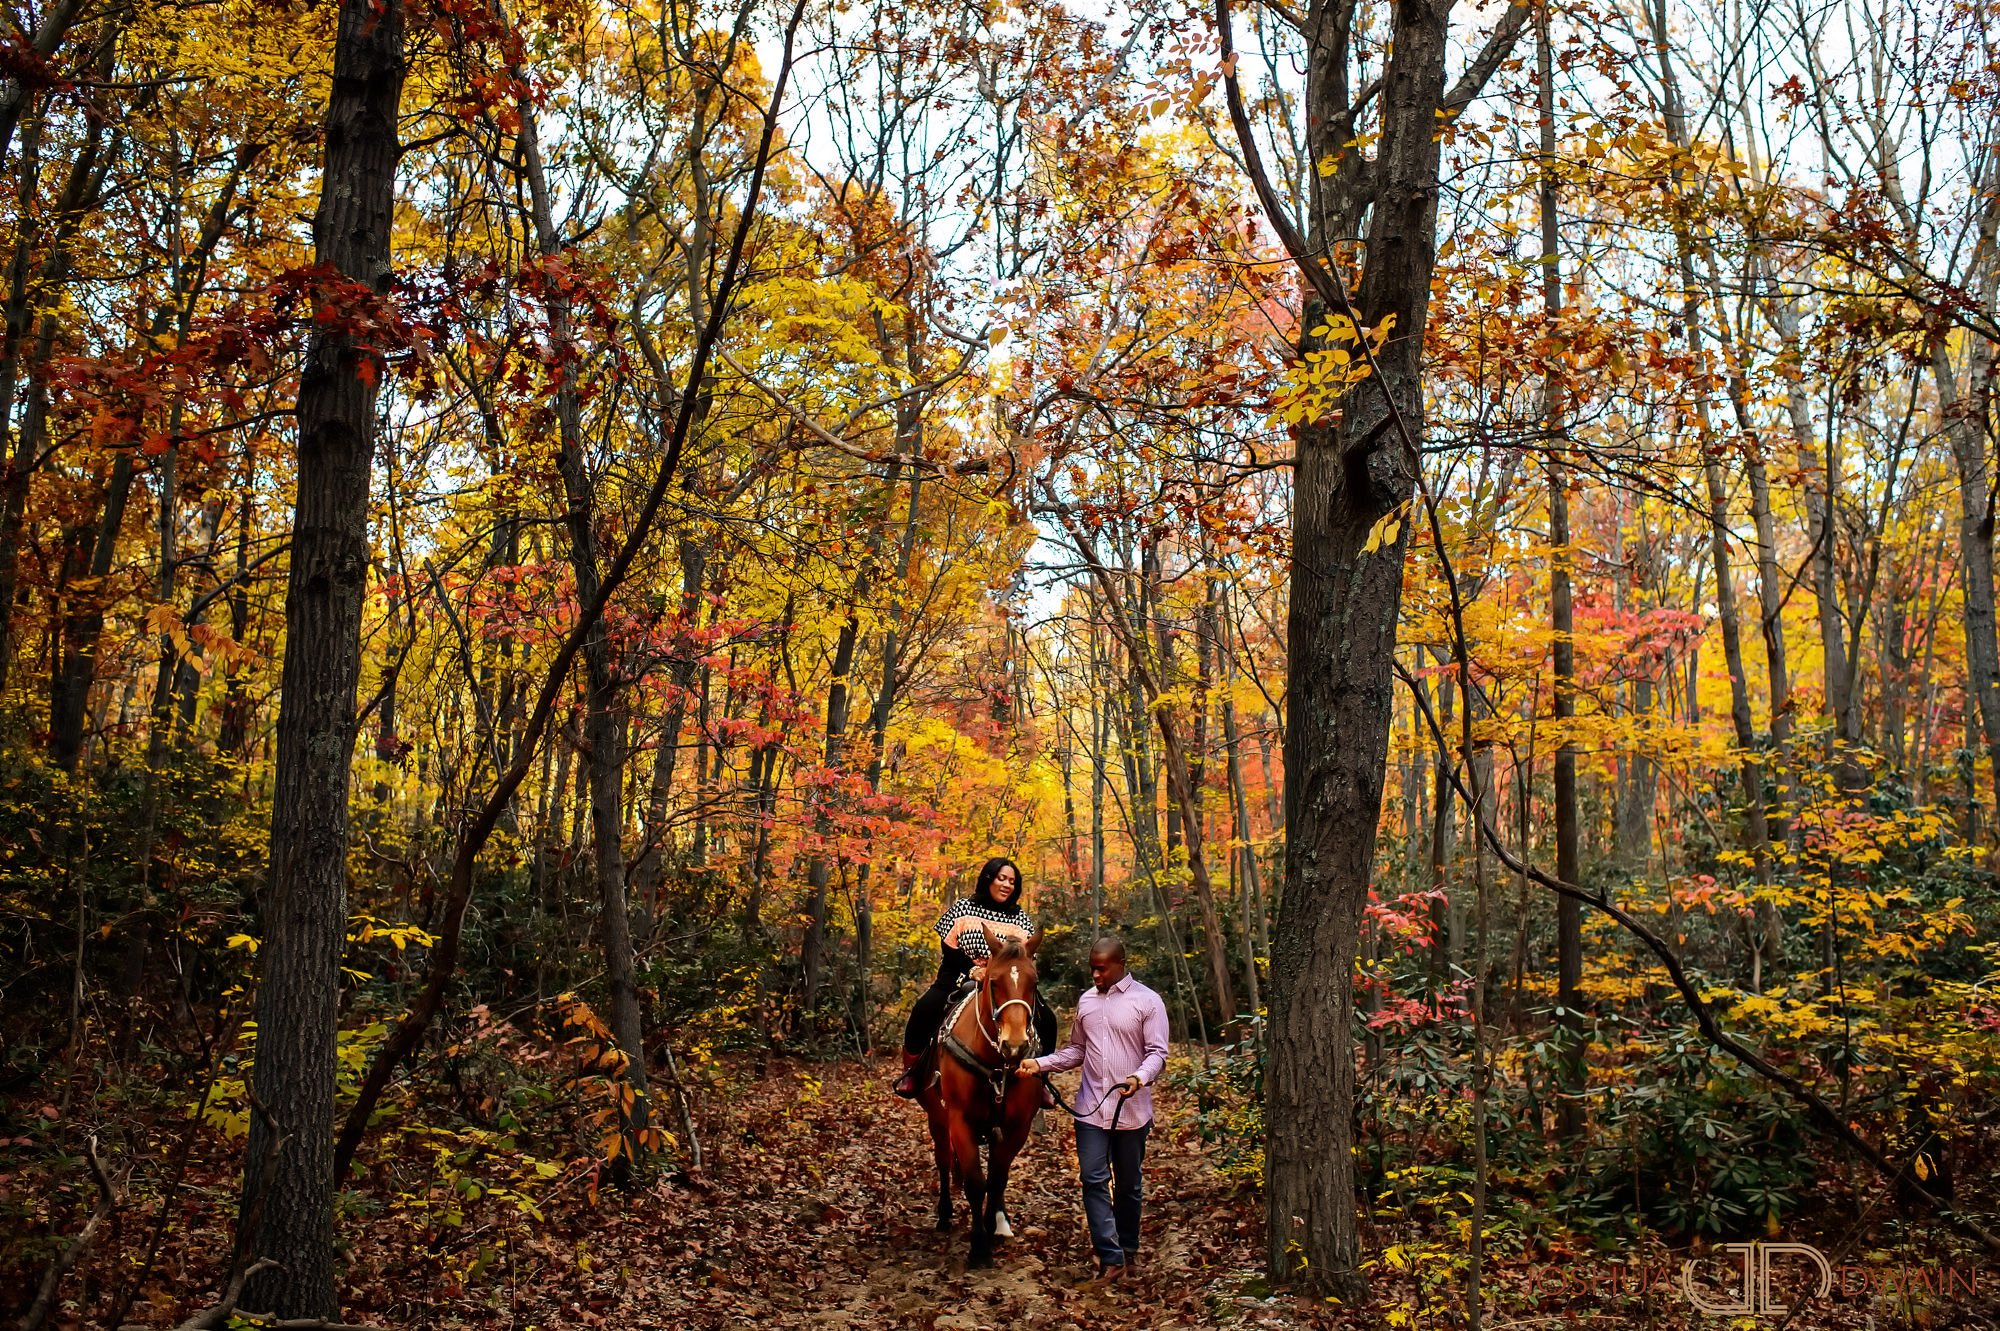 ashley-william-003-Sweet-Hills-Riding-Center -Long-Island-NY-engagement-wedding-photographer-joshua-dwain